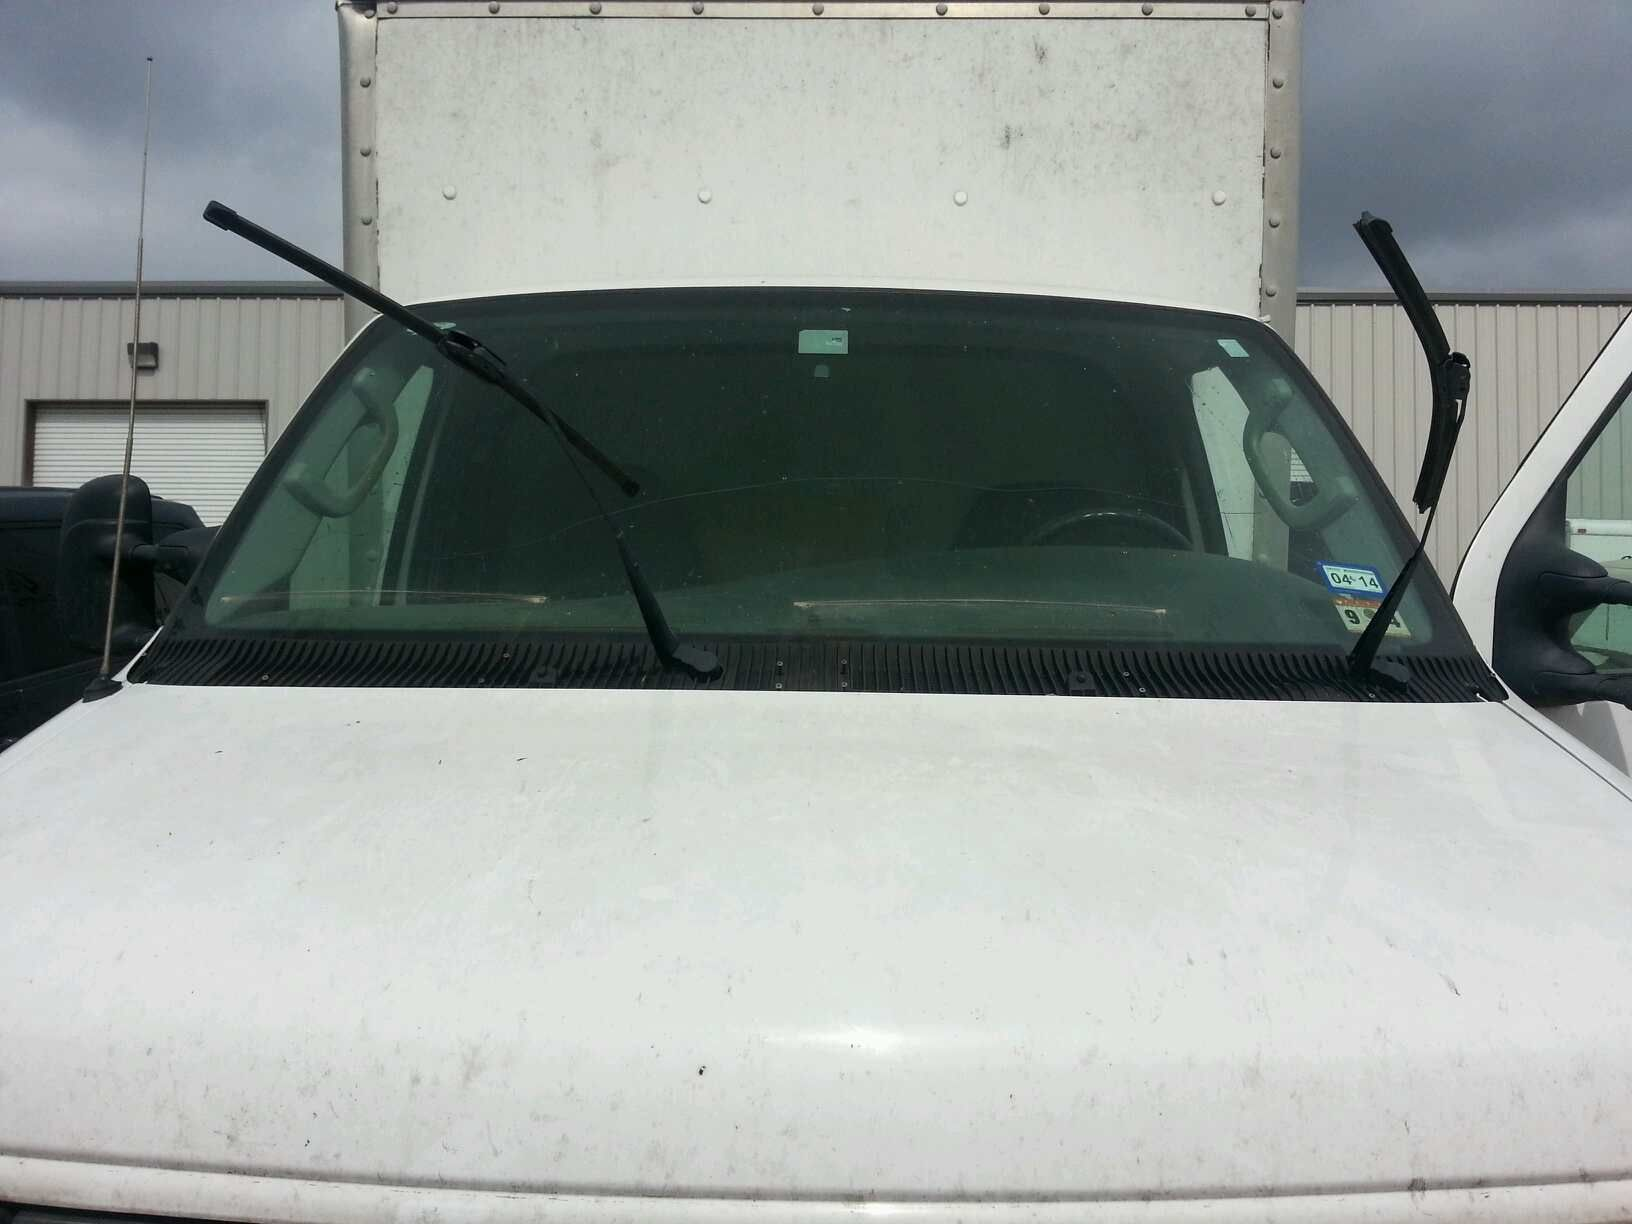 2006 Ford Escape Windshield Replacement Cost